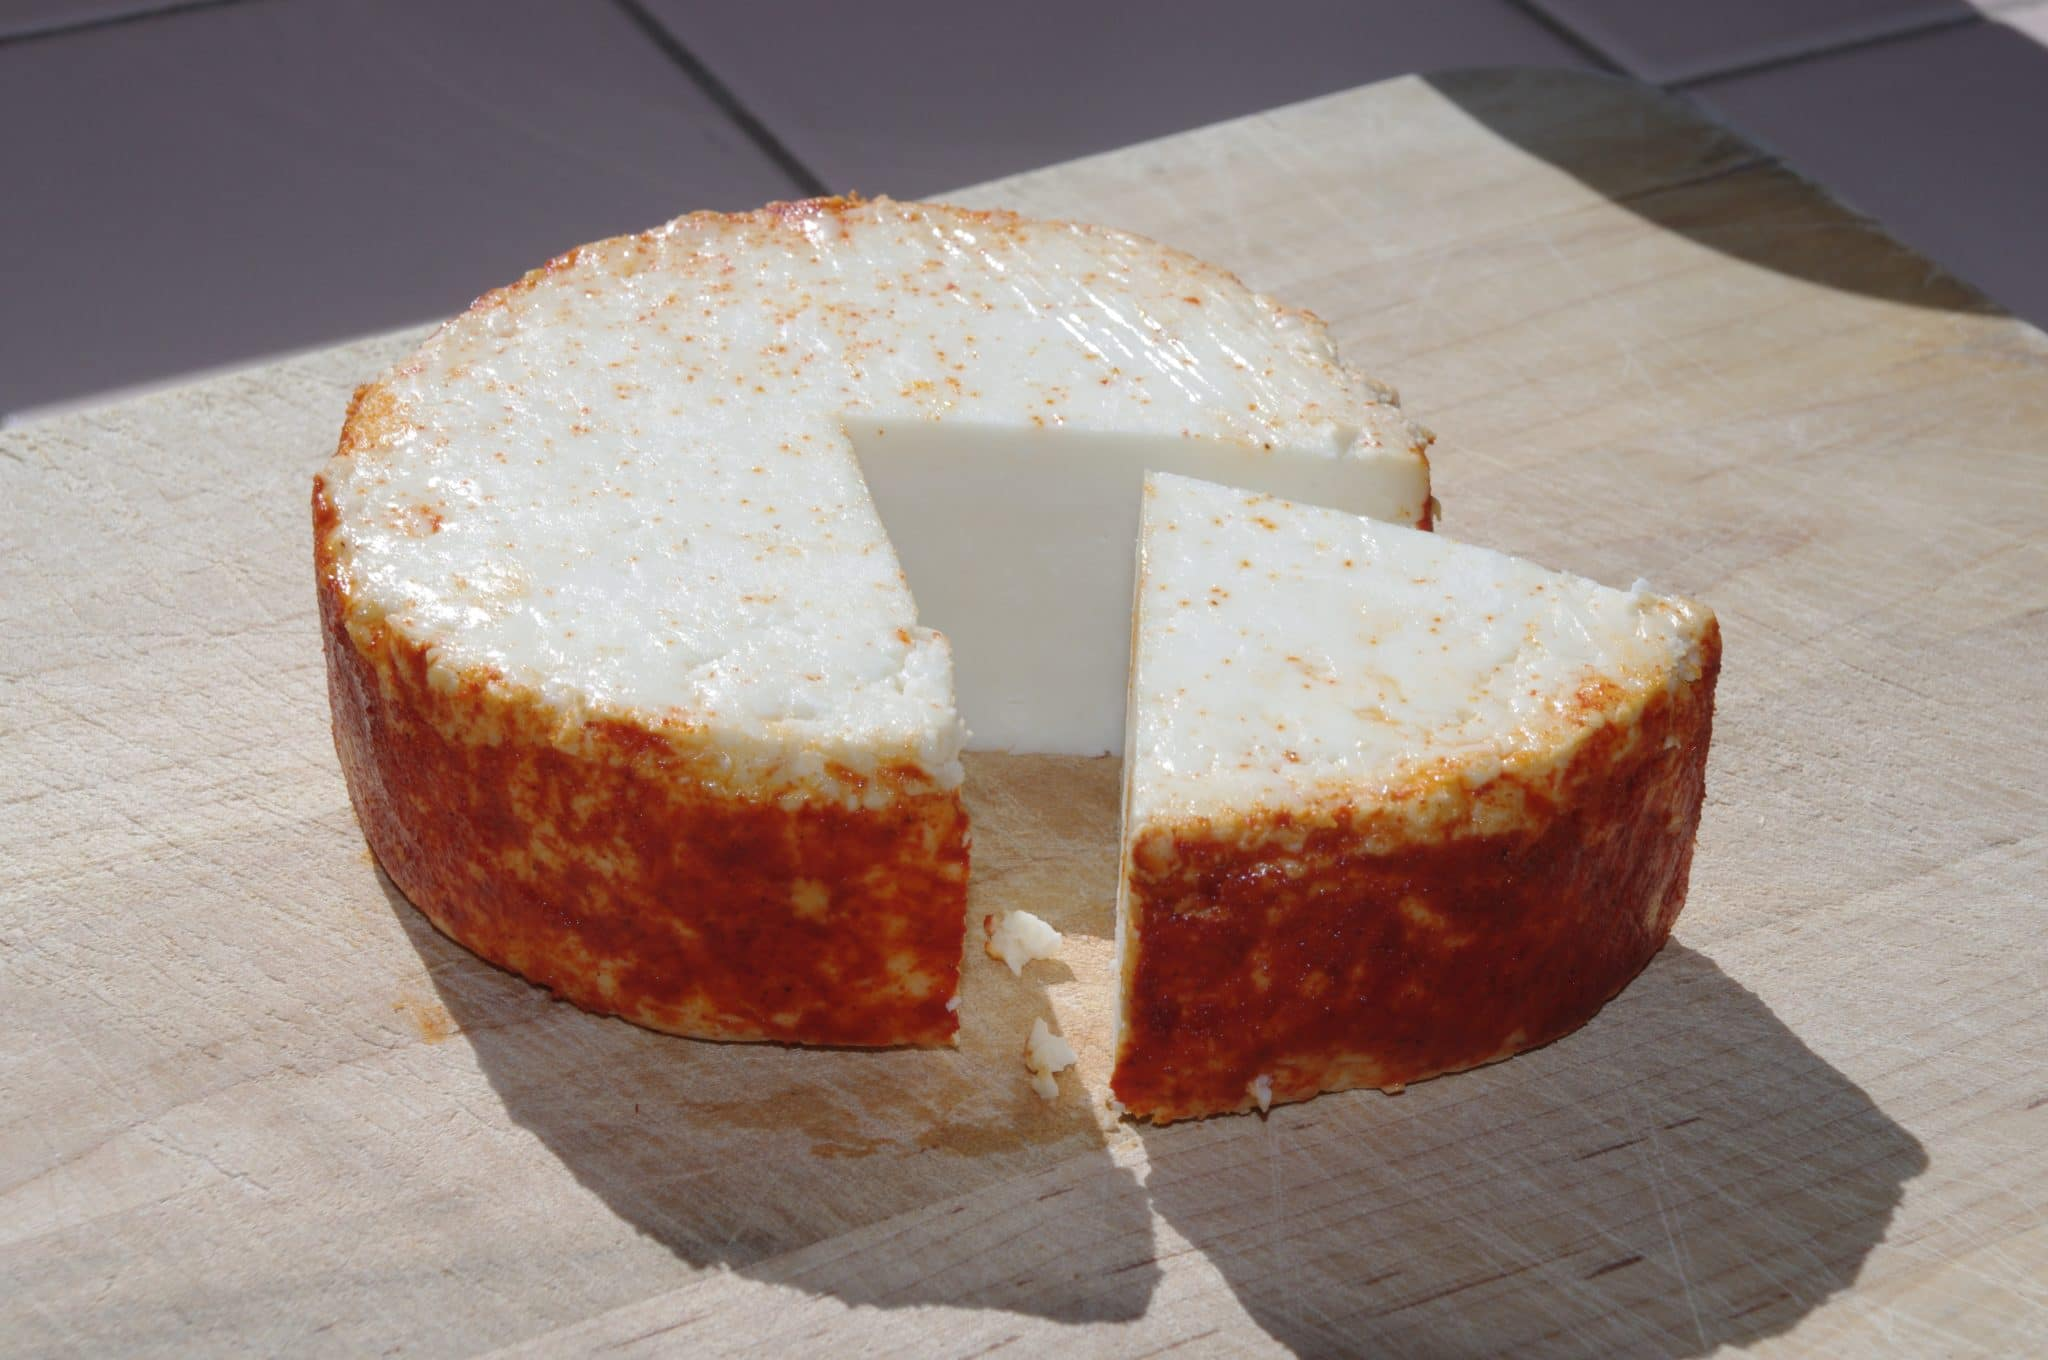 cotija cheese, what is cotija cheese